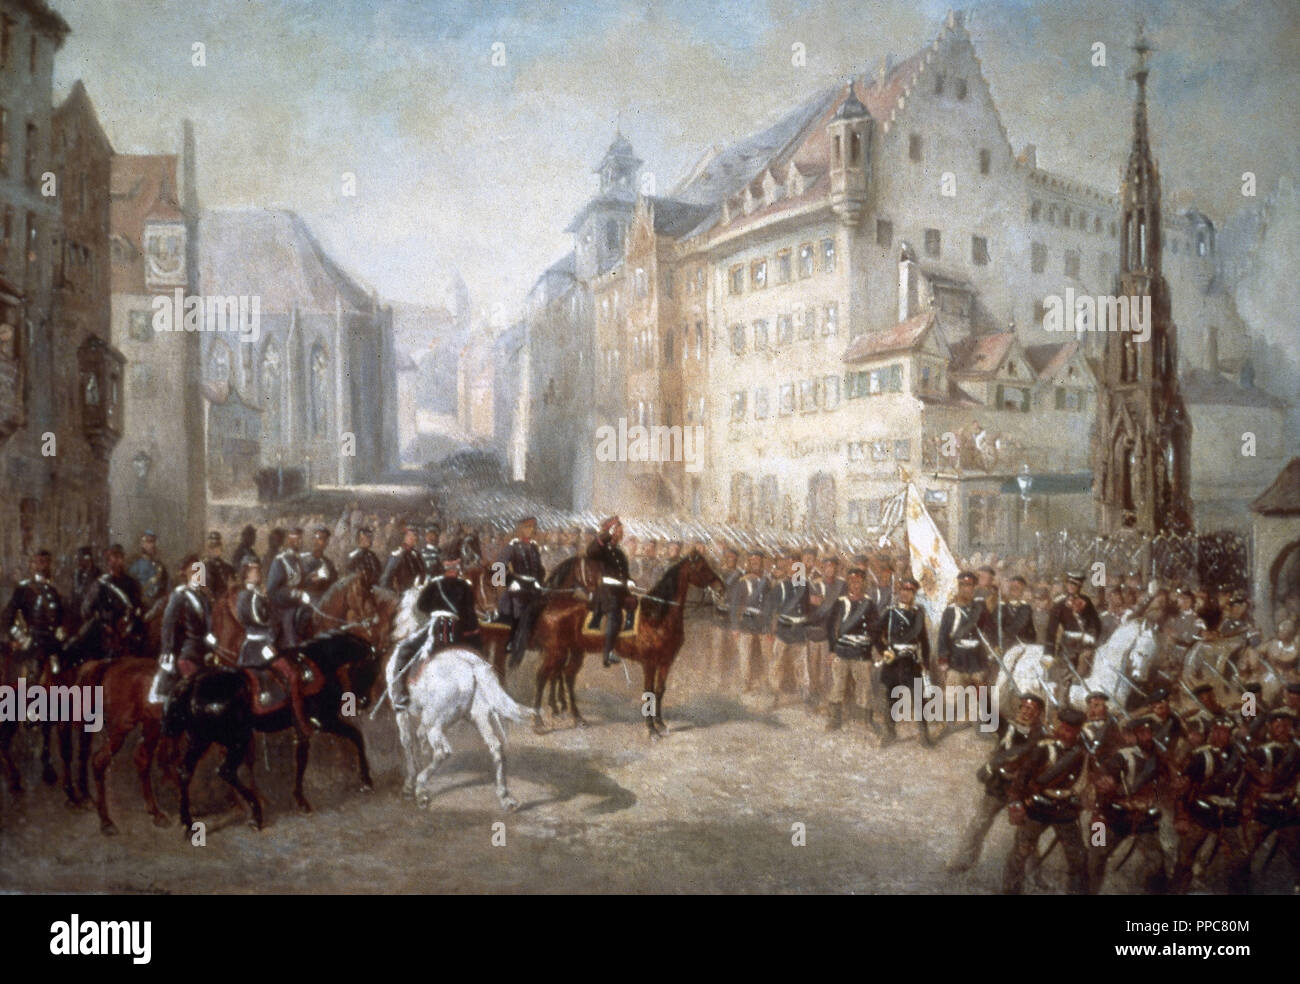 Austro-Prussian War. Parade of troops in the Market Square in Nuremberg during the occupation of the city by the Prussians in 1866. Painting by Louis Braun (1836-1916). - Stock Image